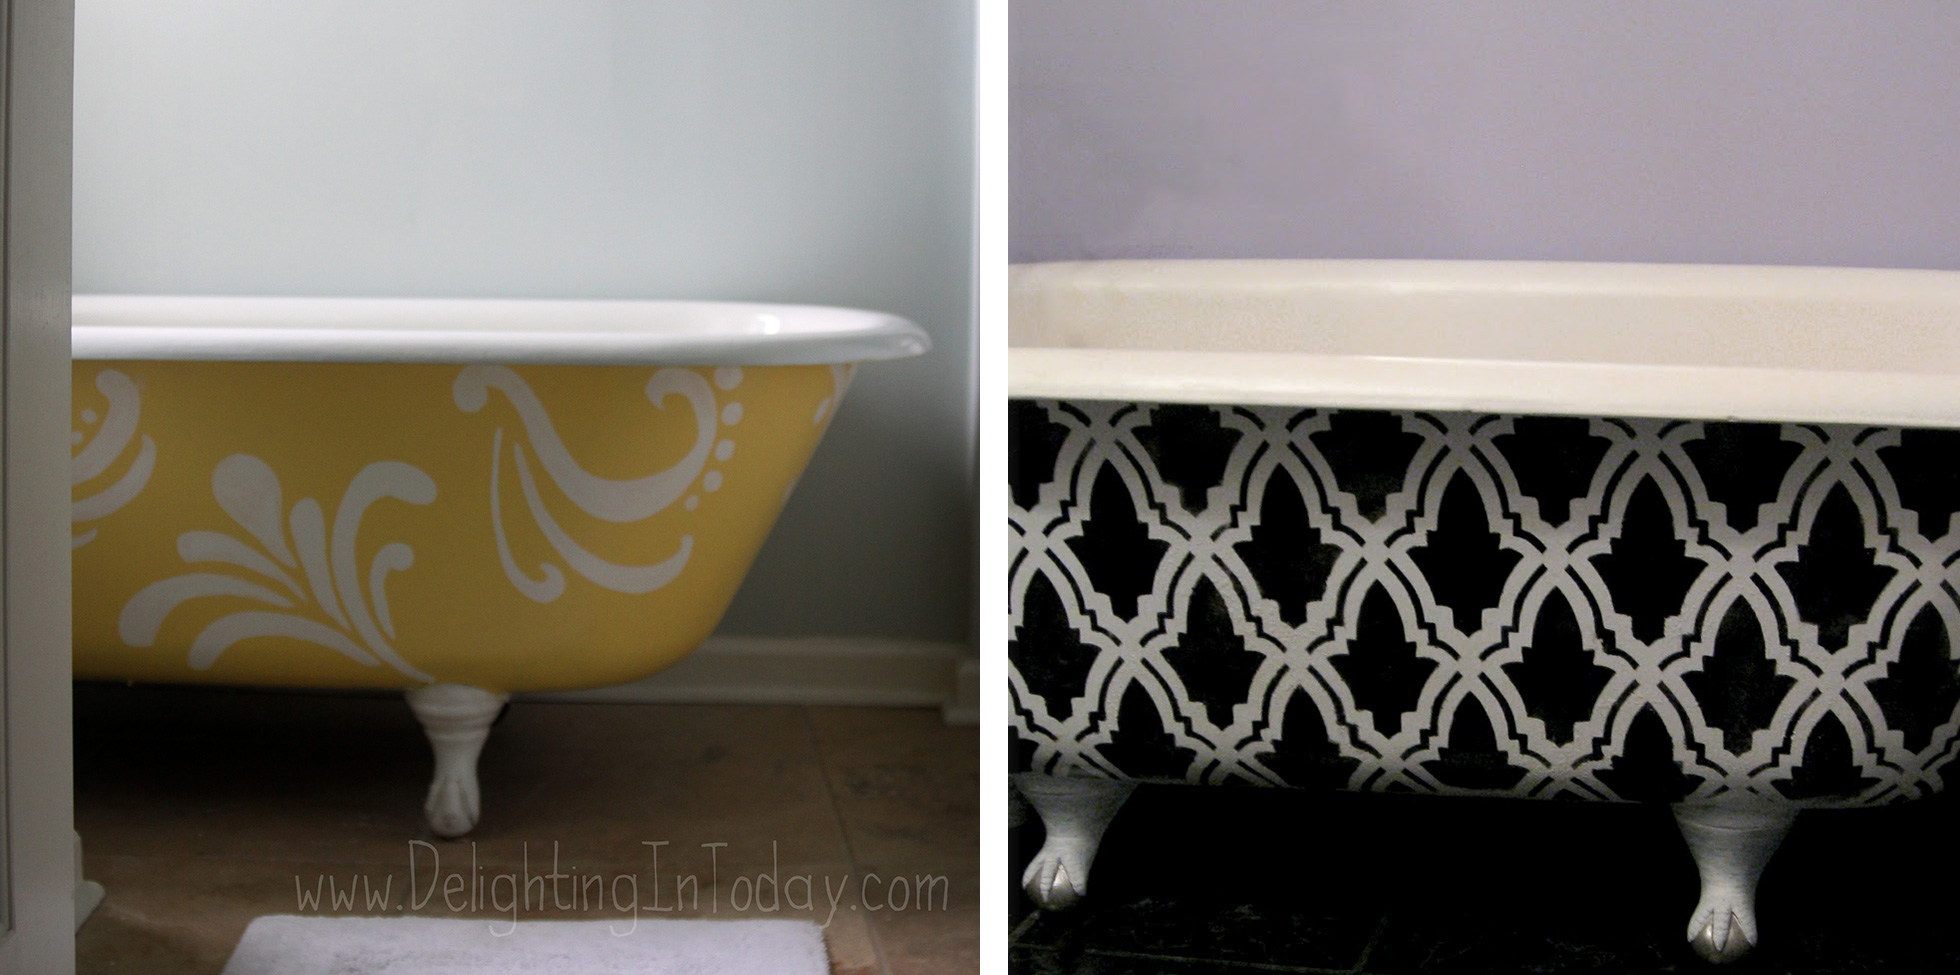 Two bathtubs that were repainted with hip designs